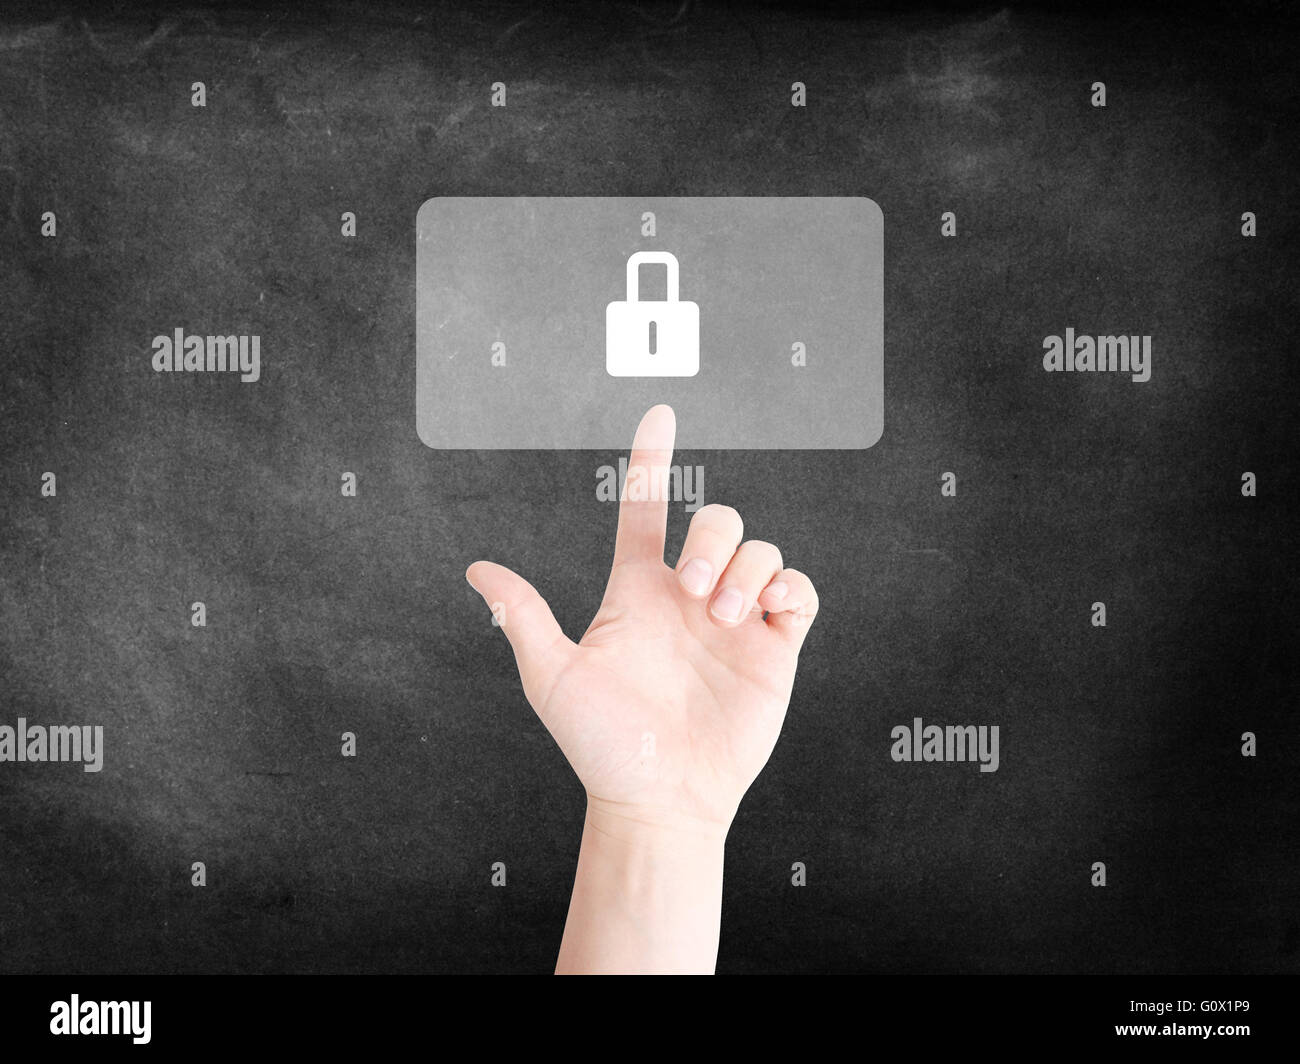 Finger tapping on an icon to symbolize Security - Stock Image